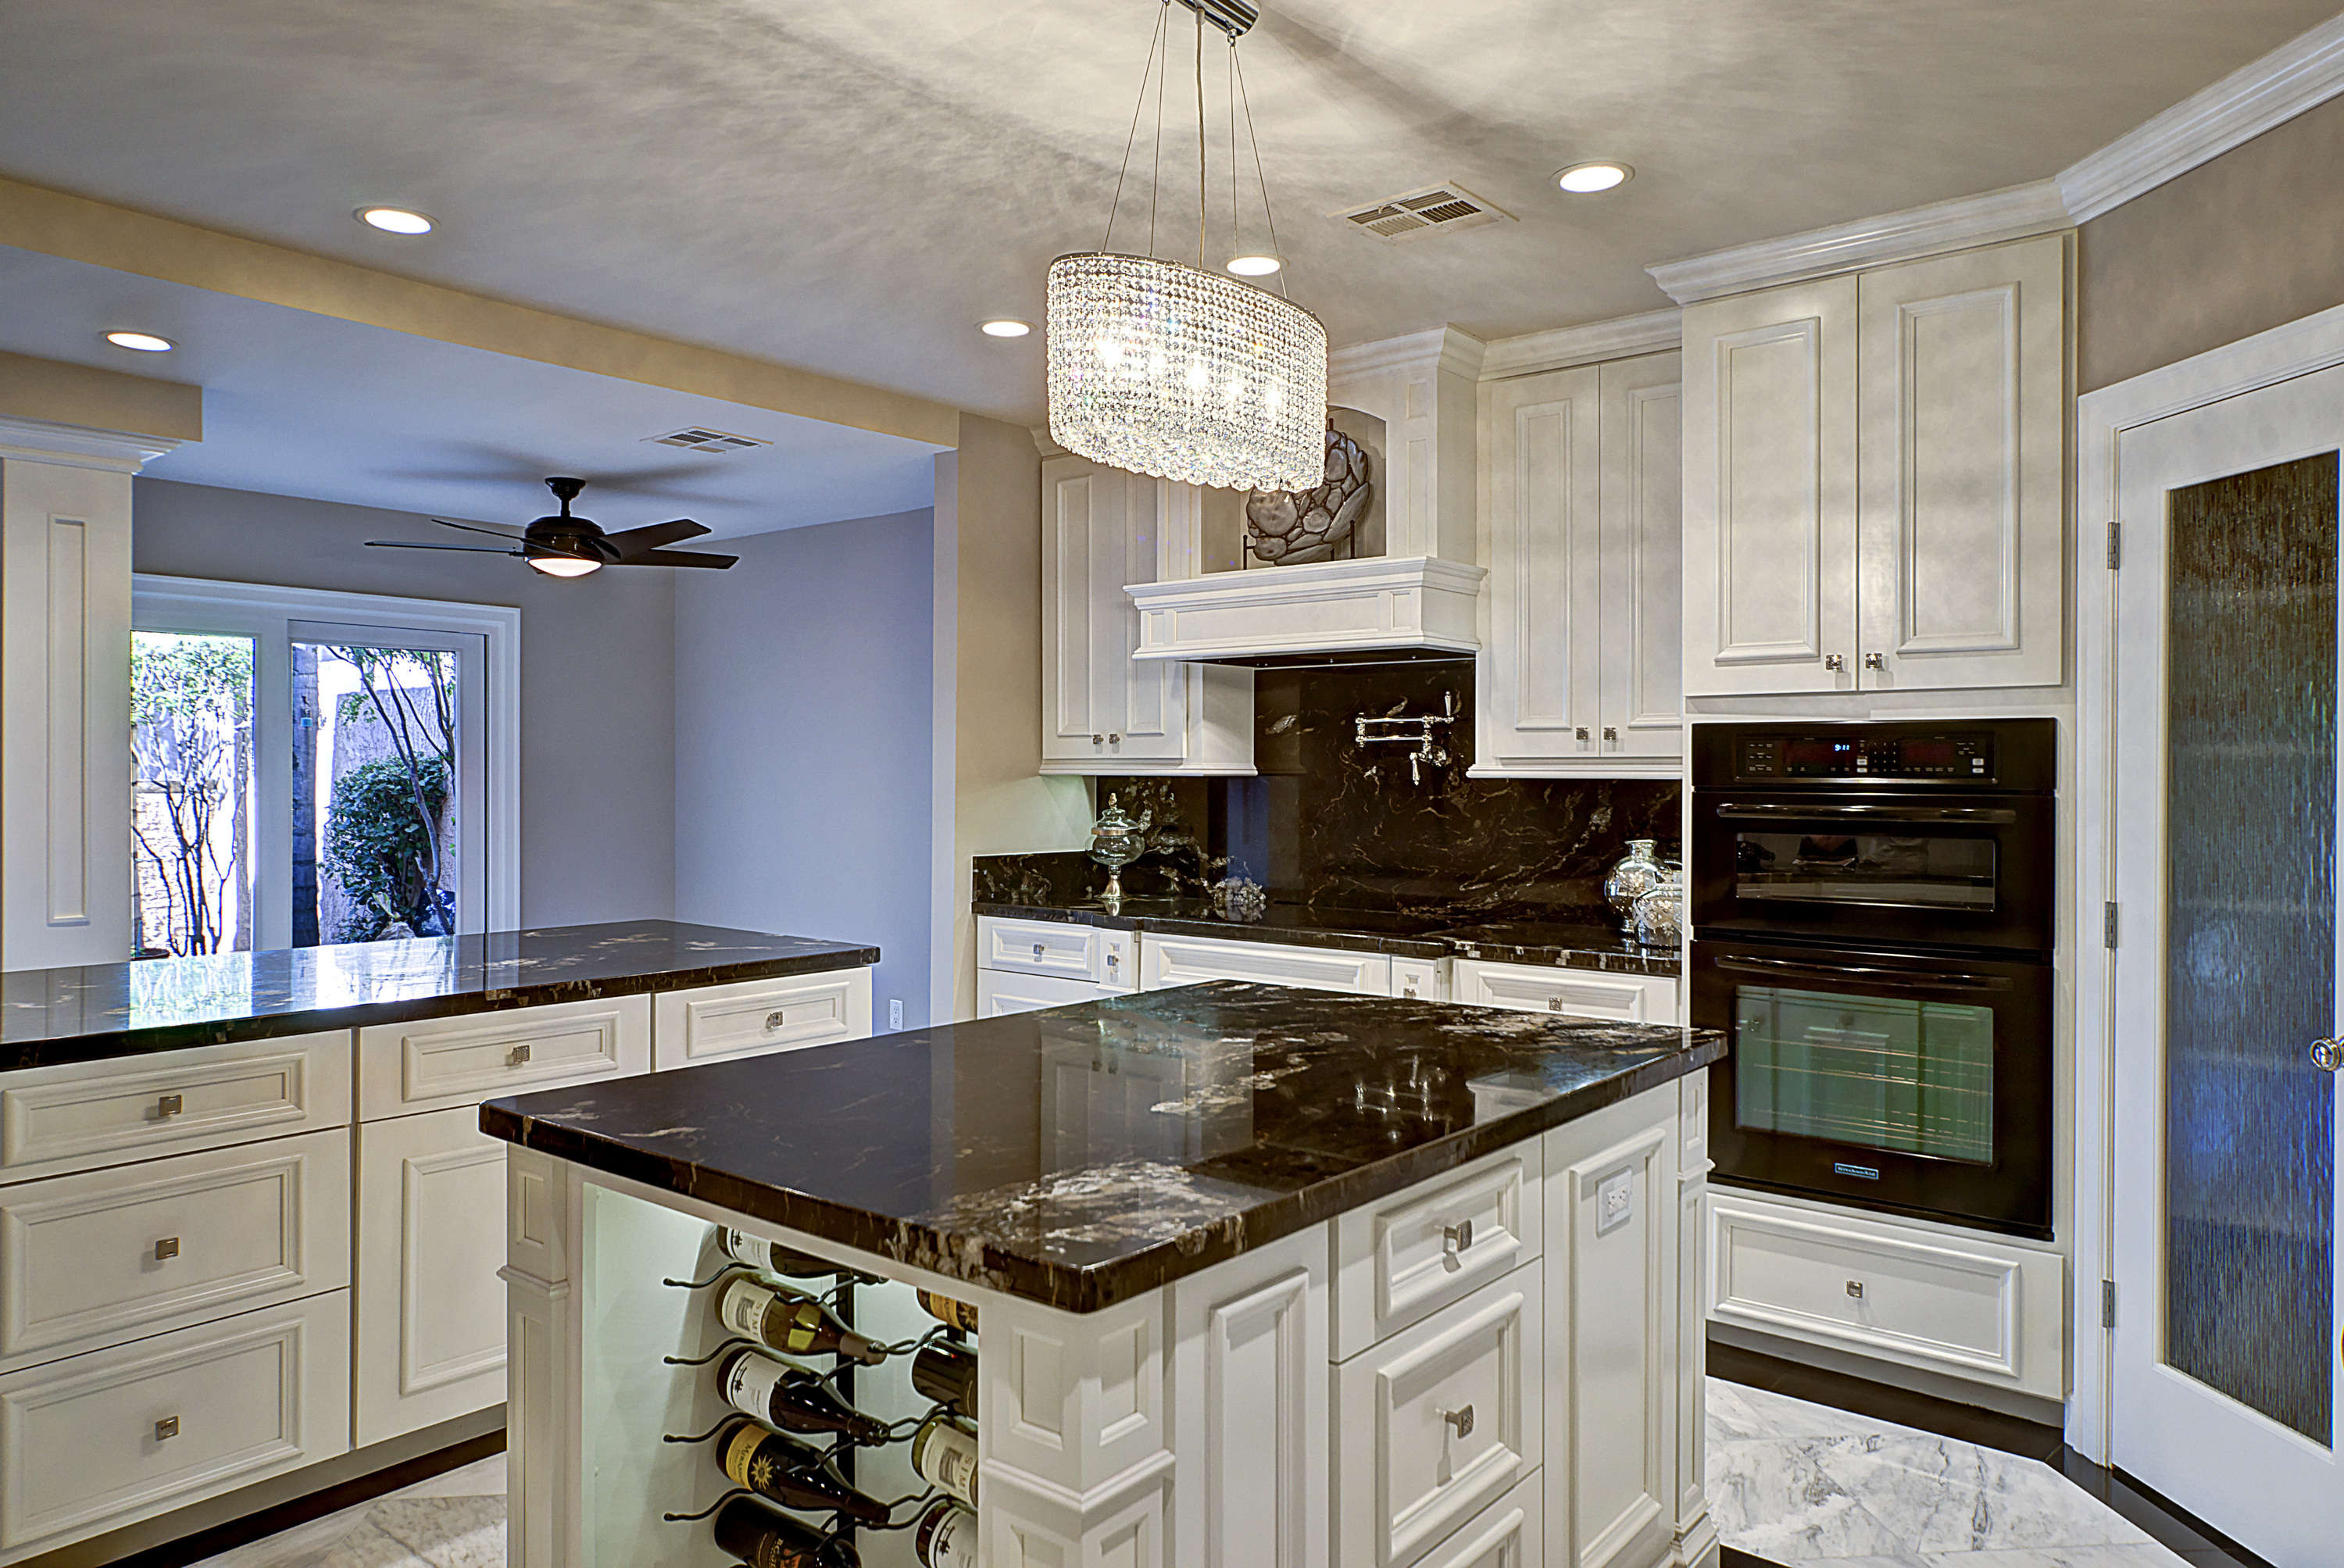 : McCormick Ranch : CASA DEL REY HOMES